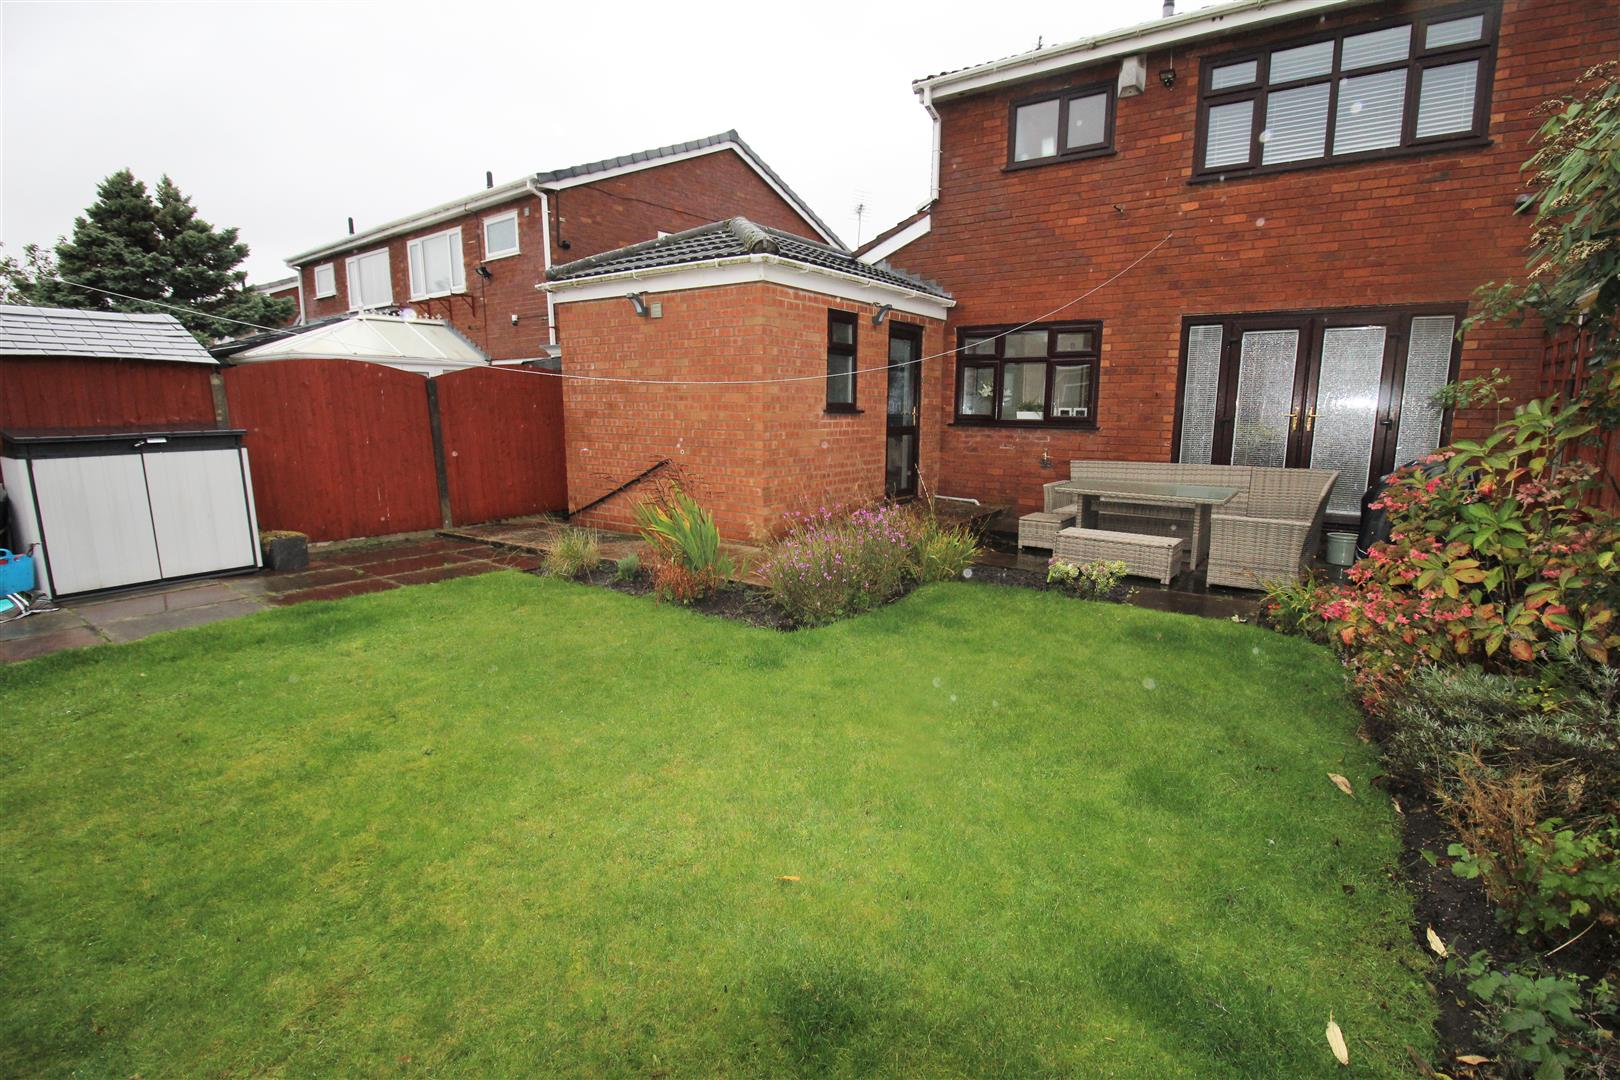 3 Bedrooms, House - Semi-Detached, Monmouth Drive, Liverpool